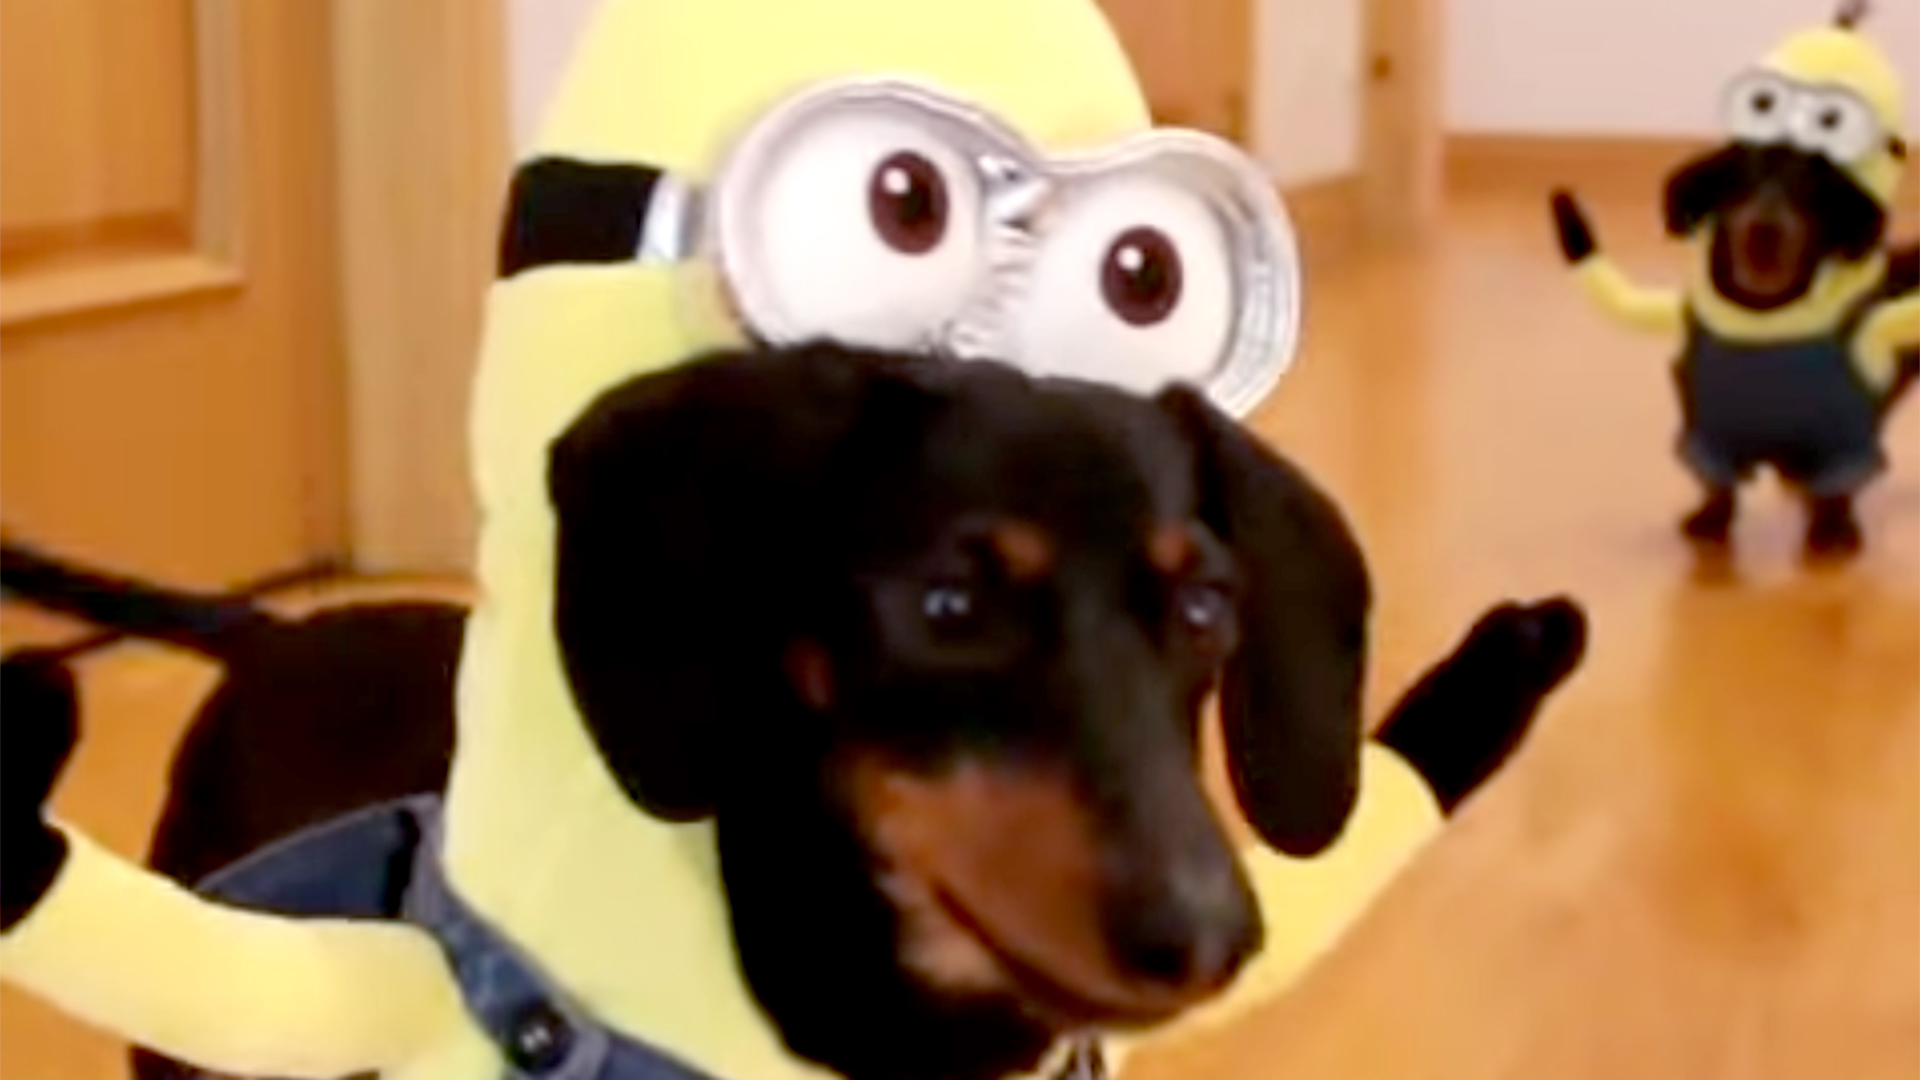 Cute Wallpaper Of Minions Dachshunds Dress As Minions From Despicable Me Franchise